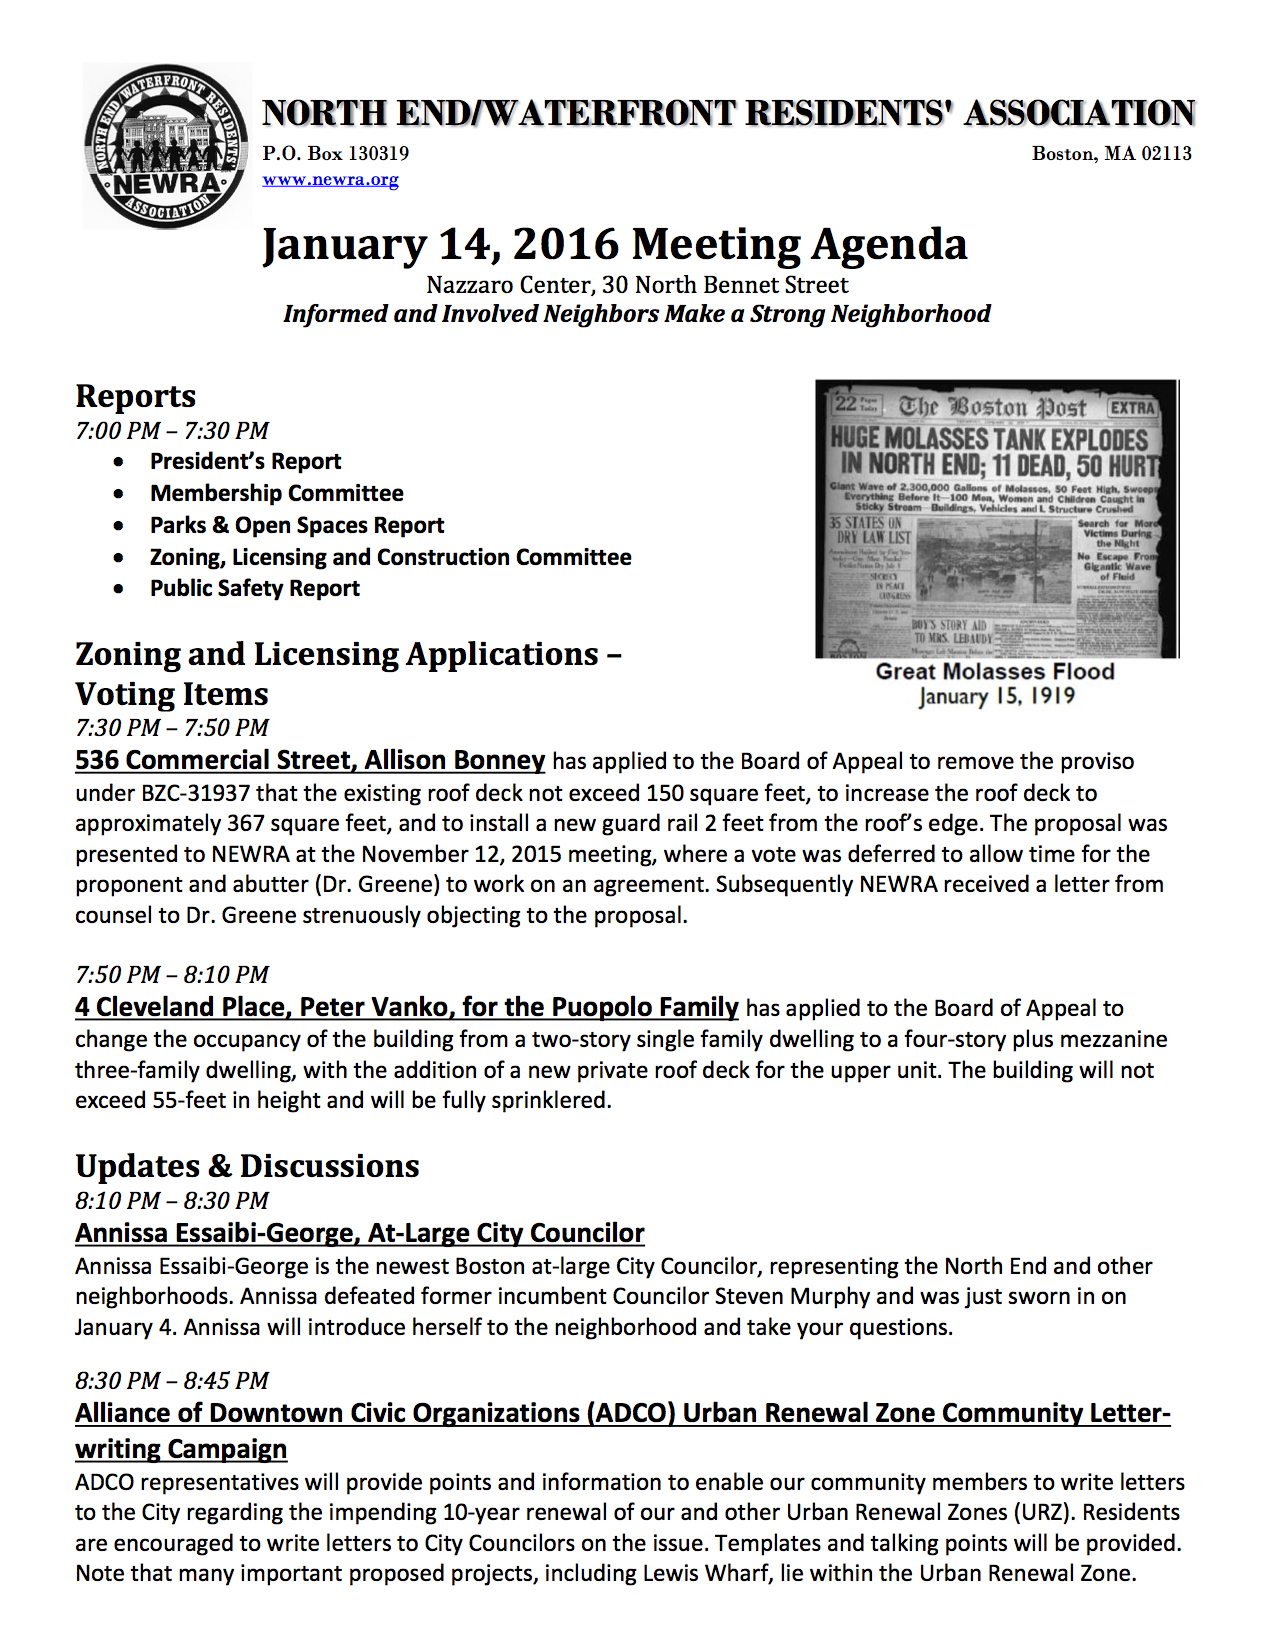 NEWRA Meeting Agenda 14 January 2016